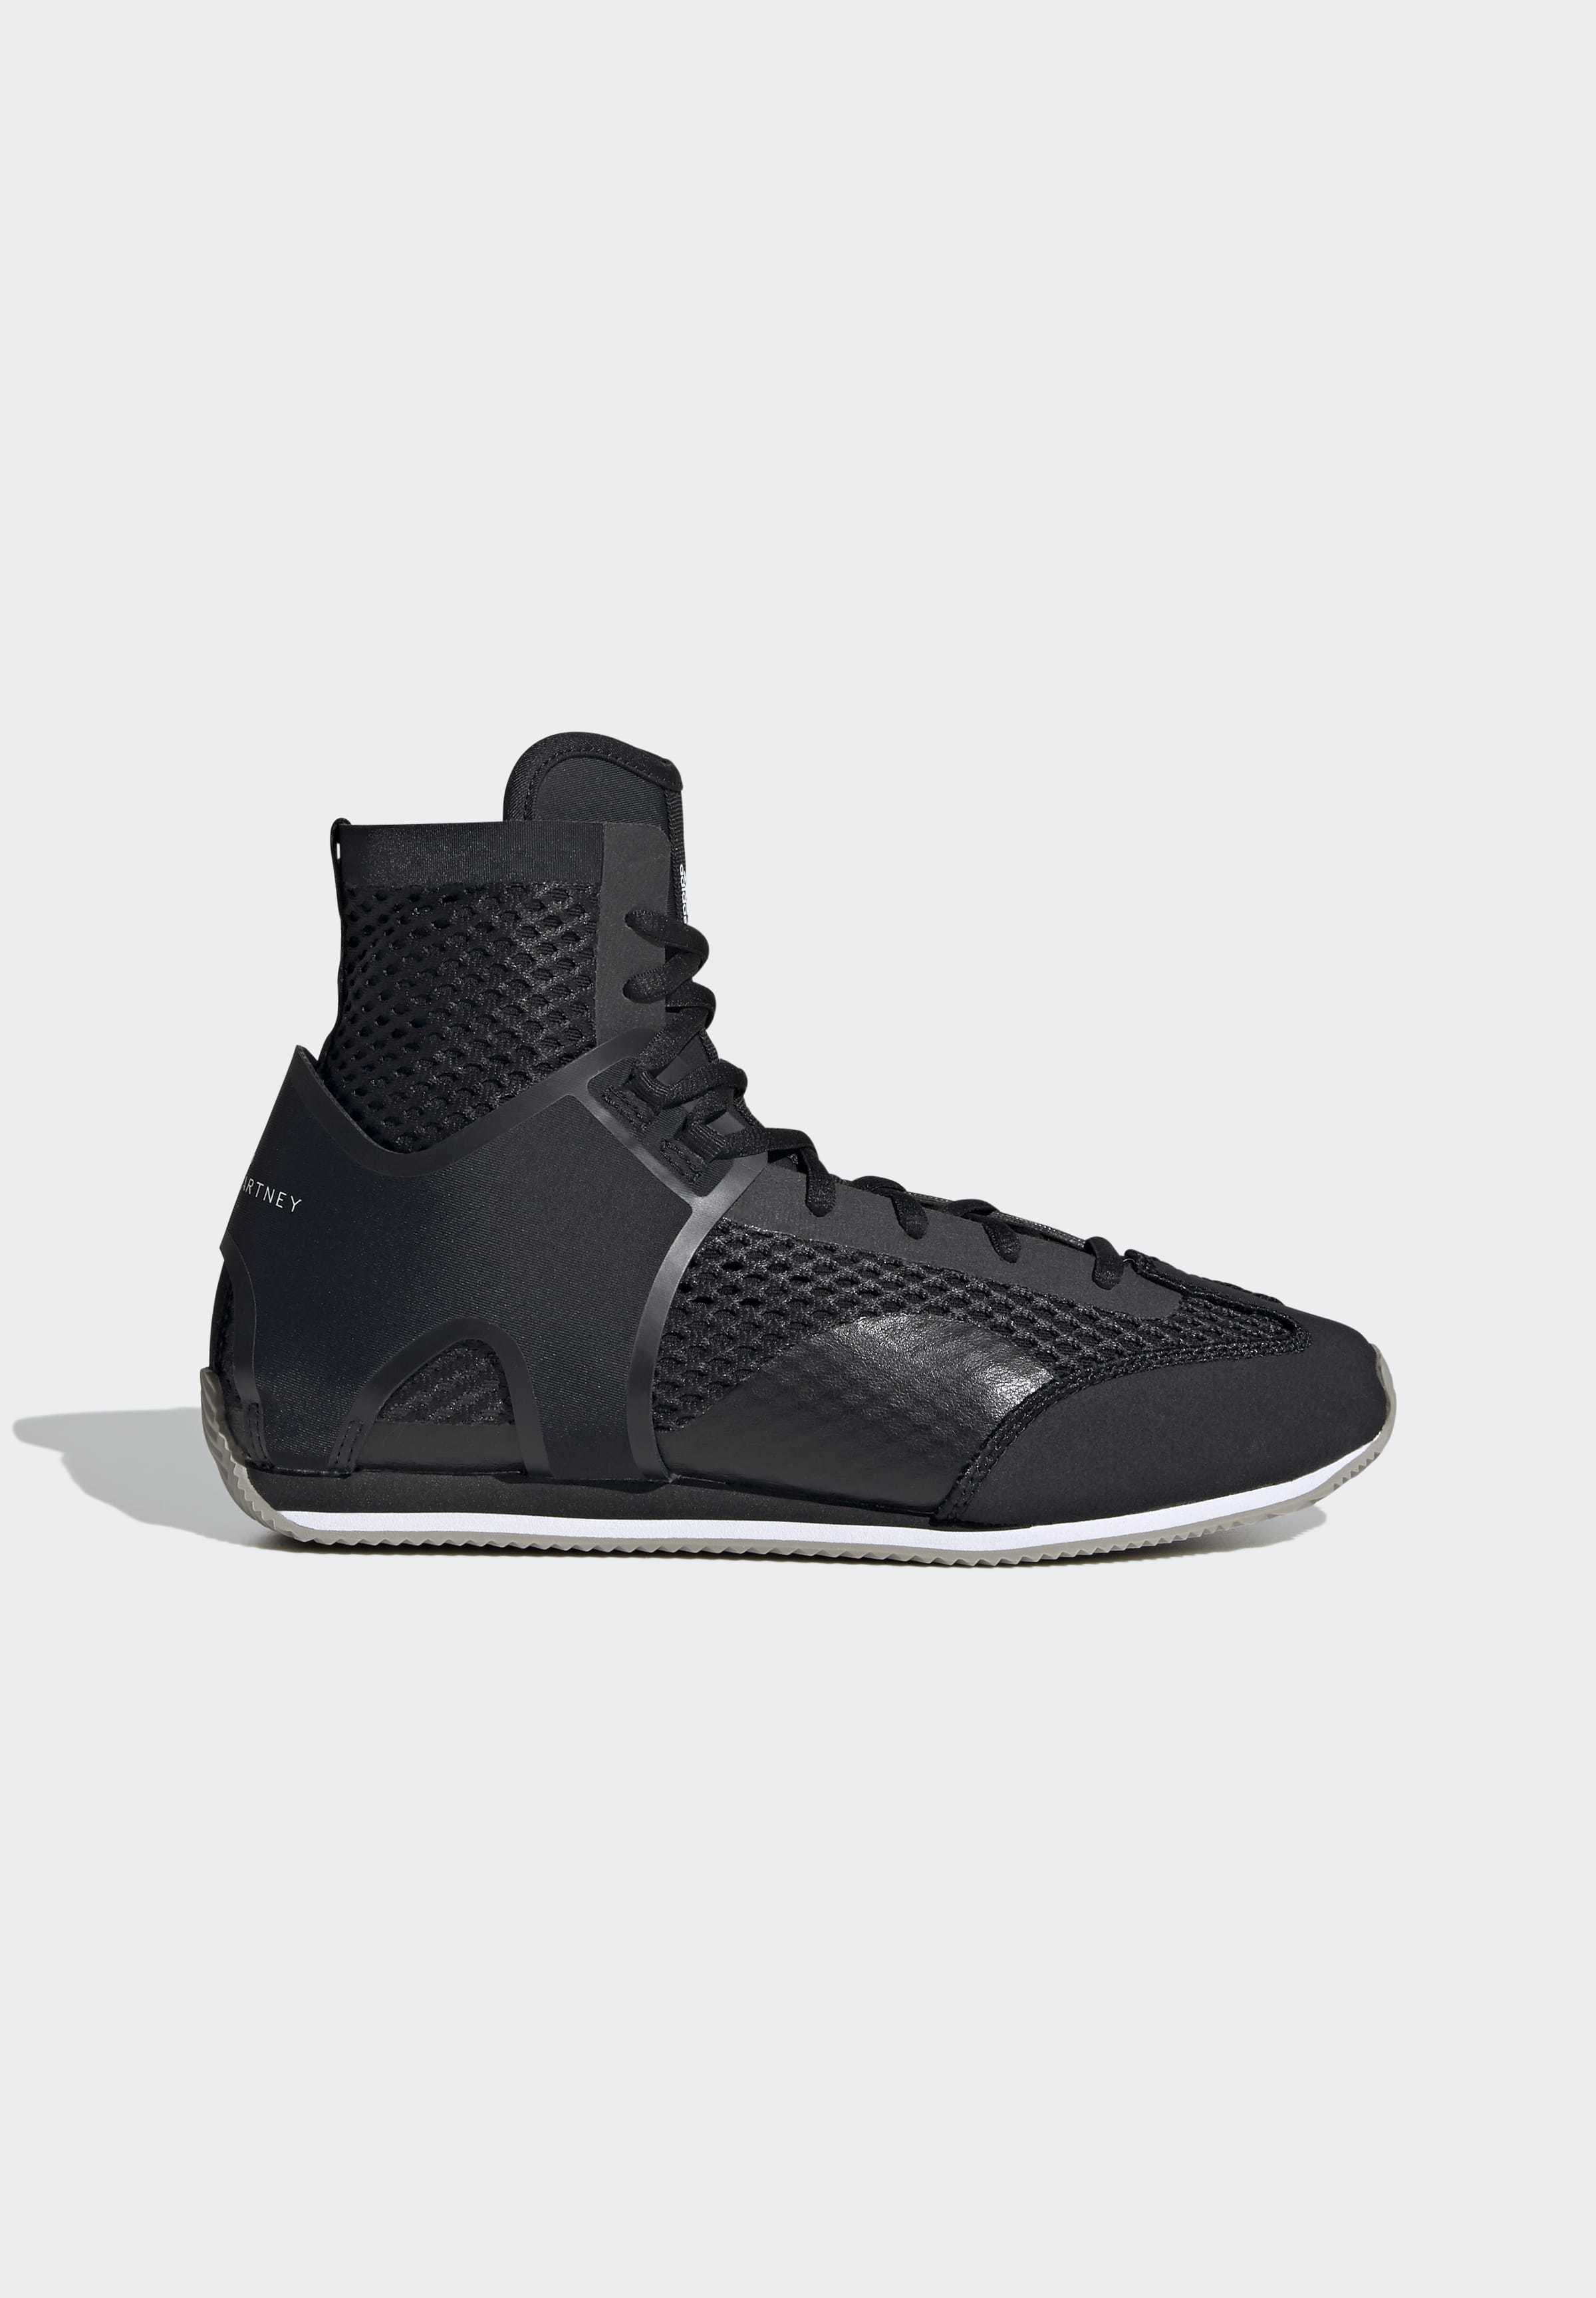 Adidas By Stella Mccartney Boxing Shoes - Obuwie Treningowe Black